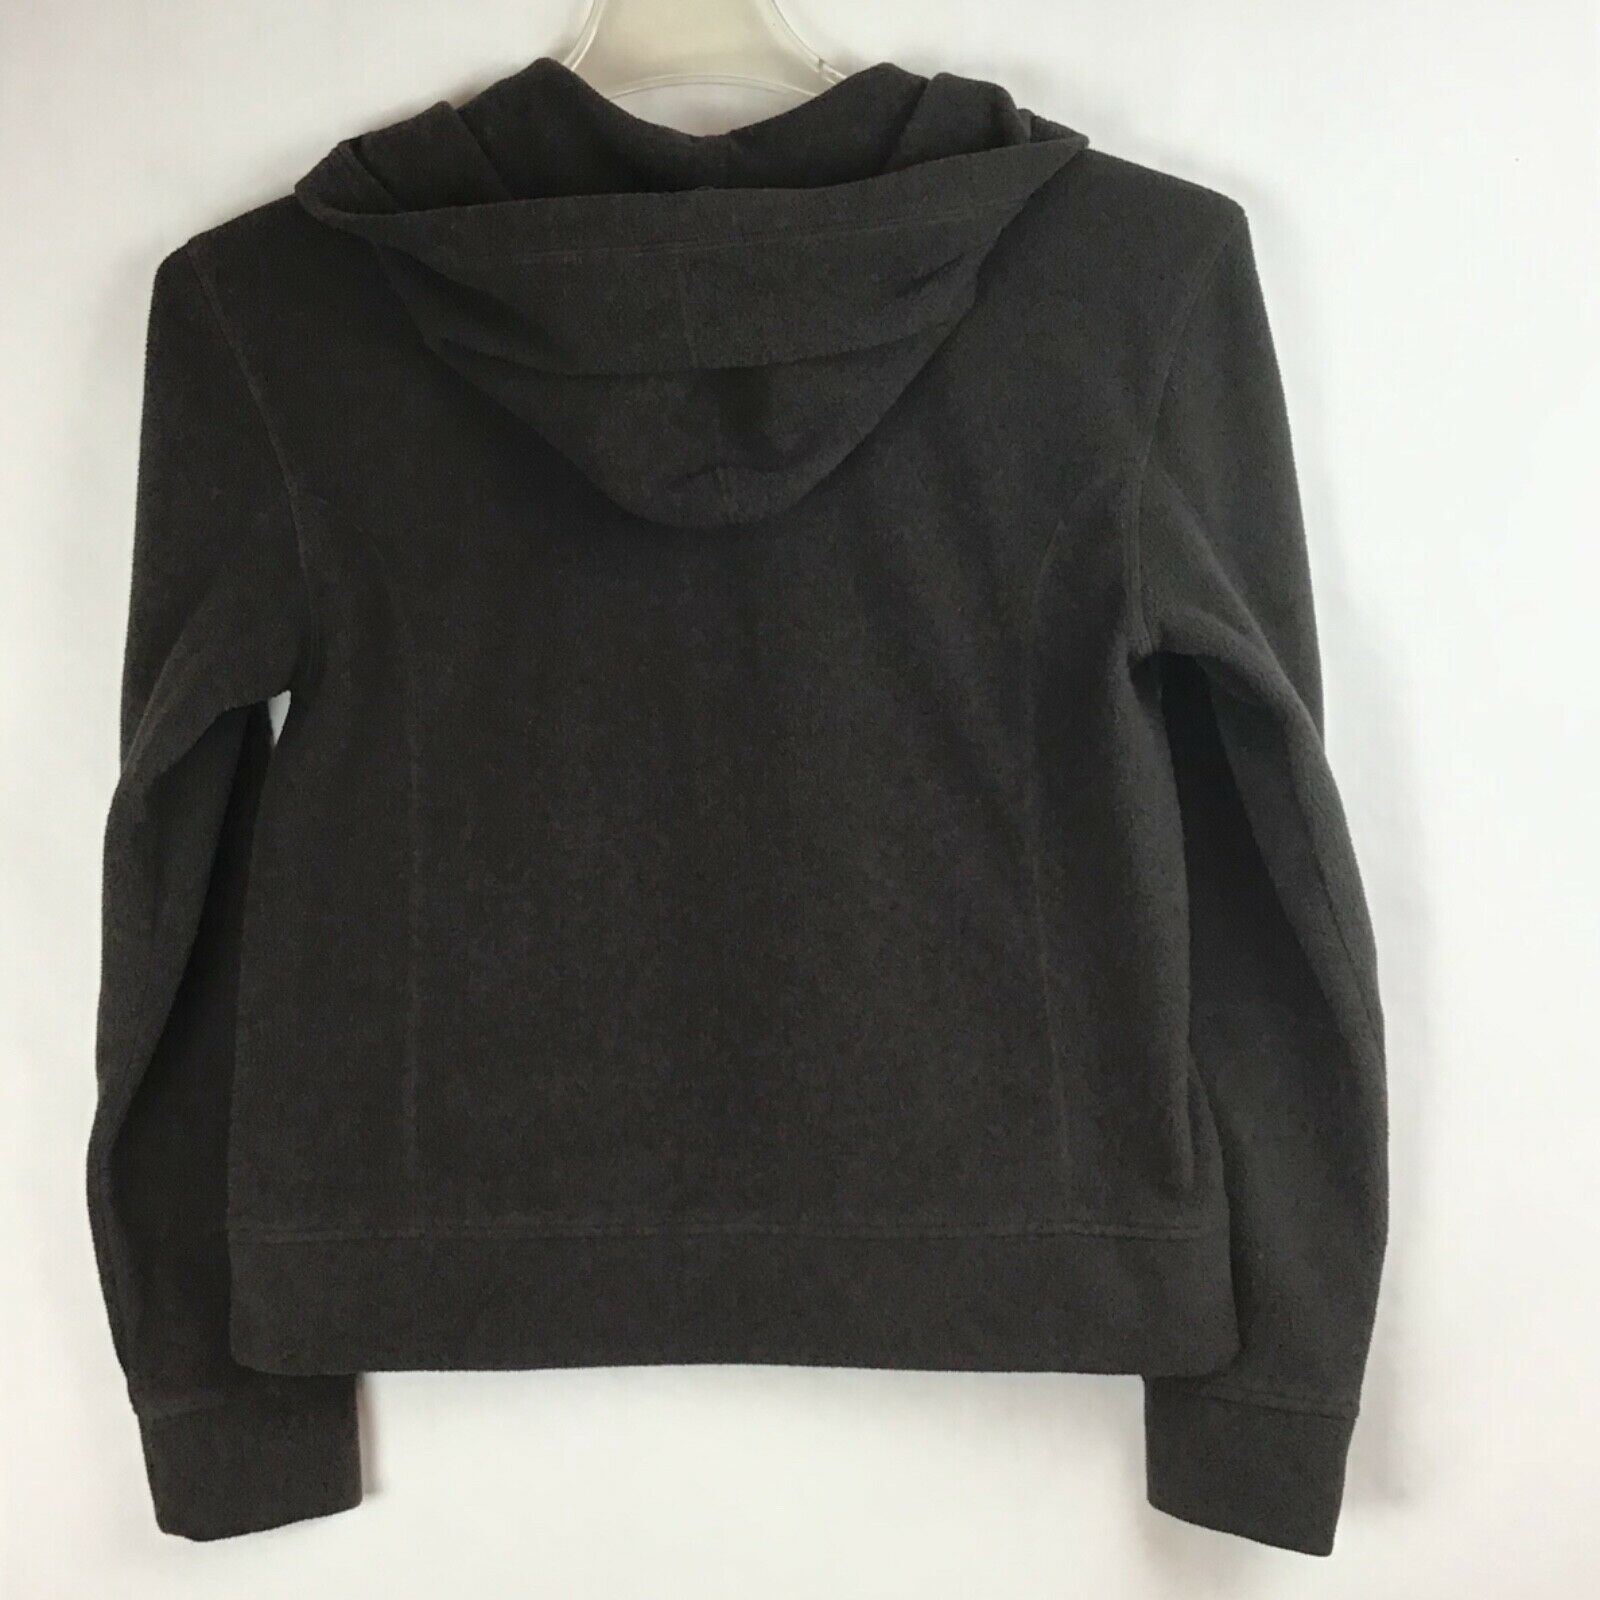 Patagonia Womens Size M Jacket Fleece Fiull Zip Long Sleeve Athleisure A32-4 image 2